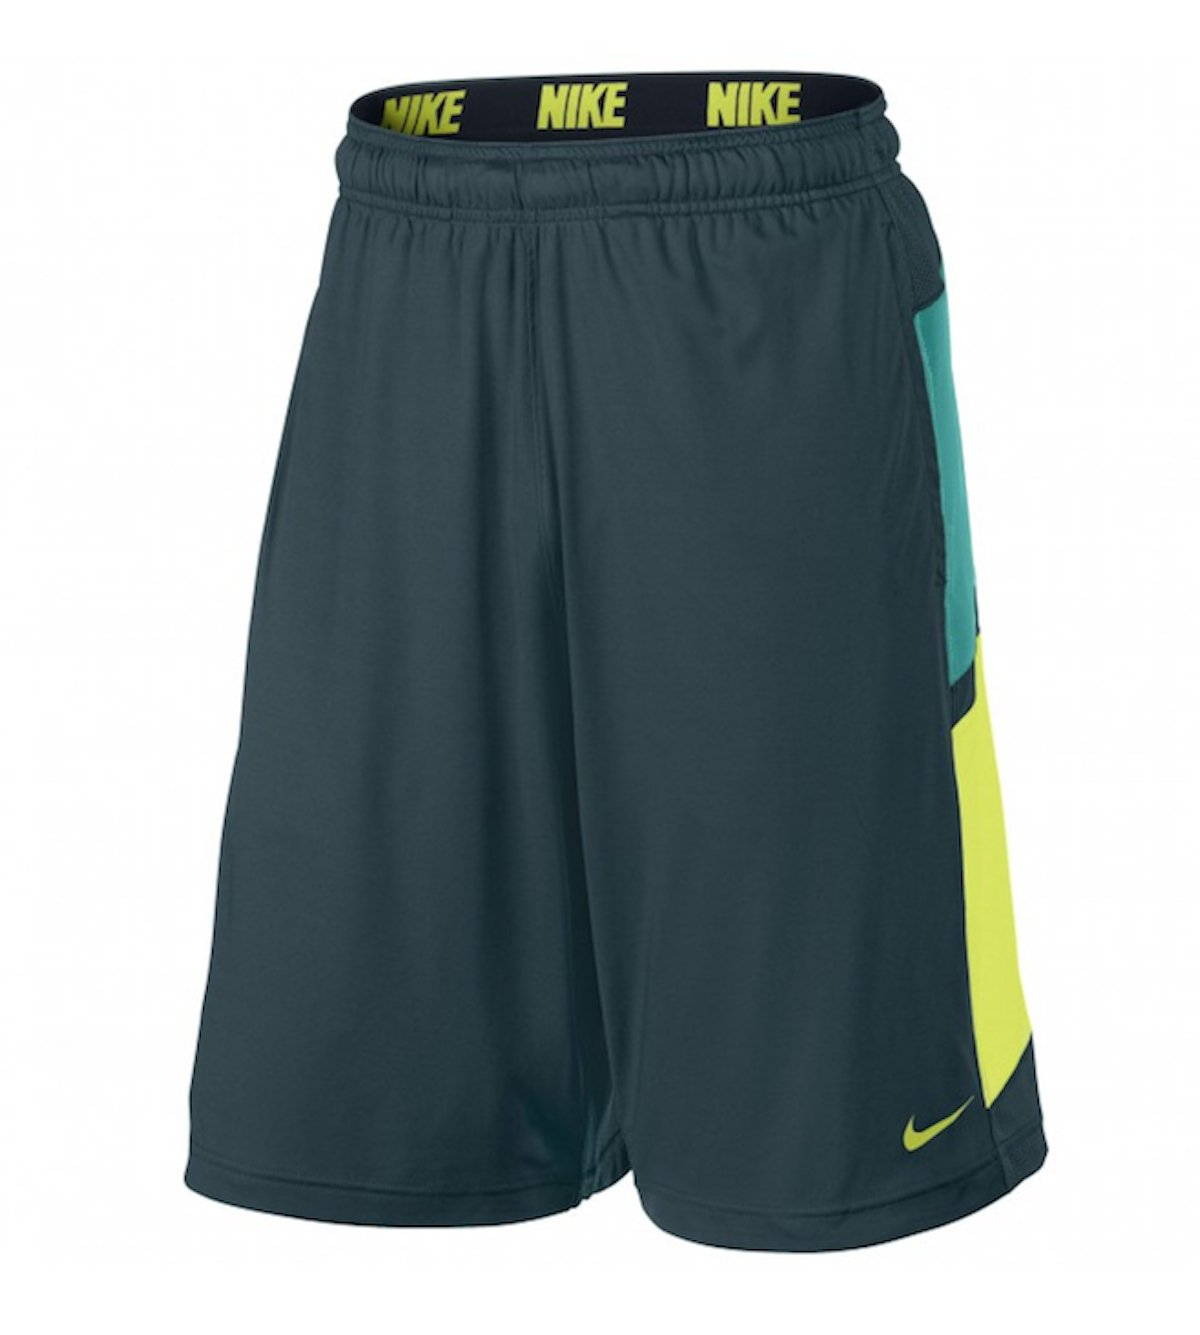 eca273071f8a Galleon - Nike Men s Hyperspeed Fly Knit Training Shorts Medium Nightshade